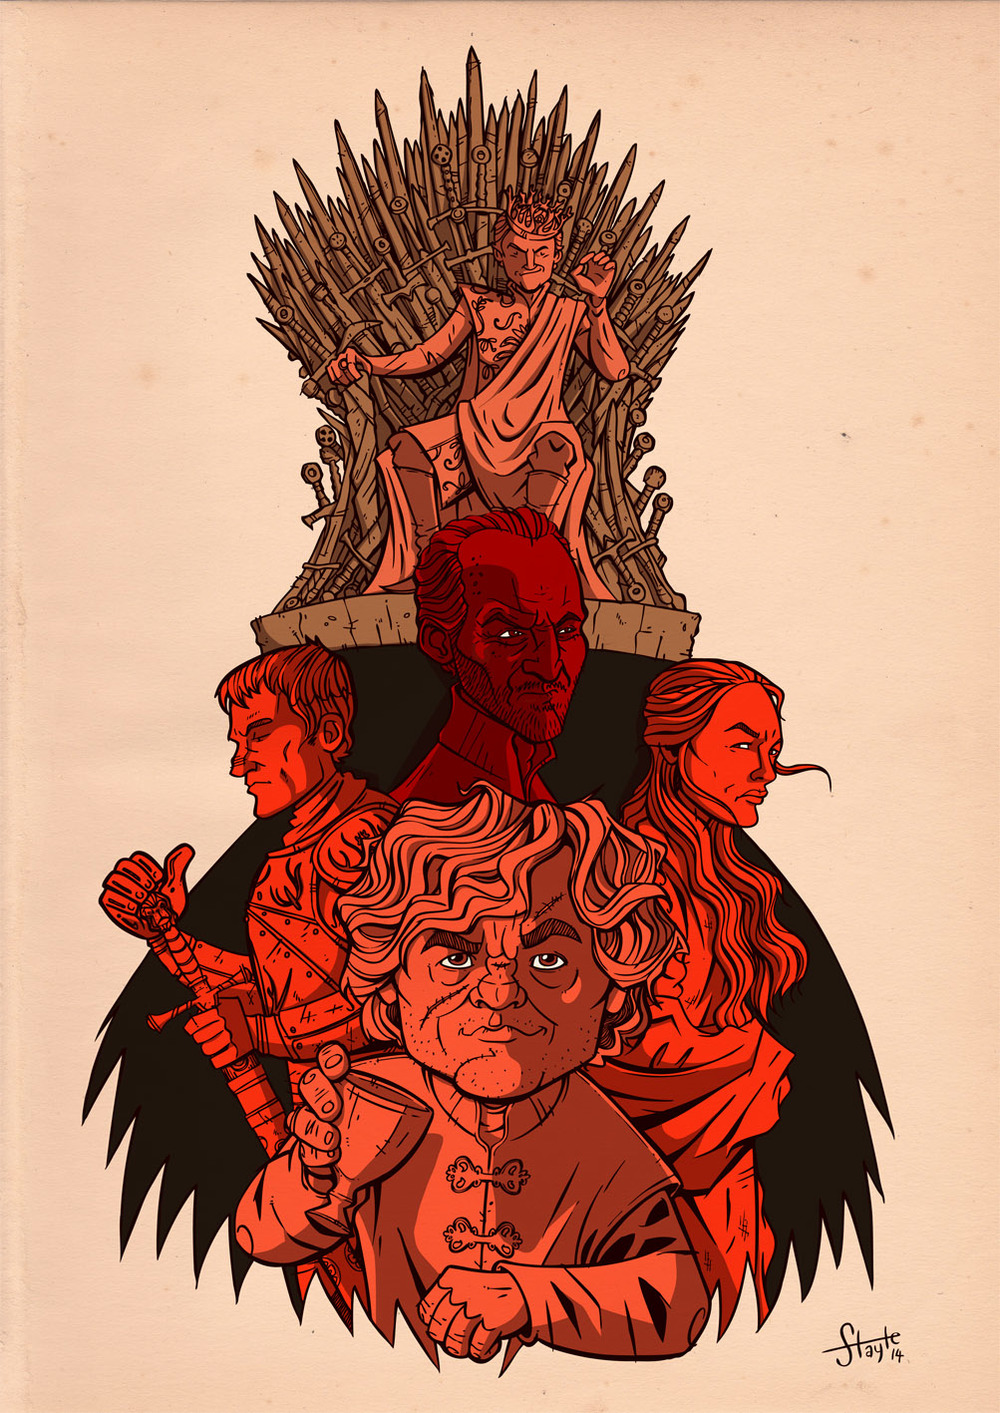 The Lannisters.